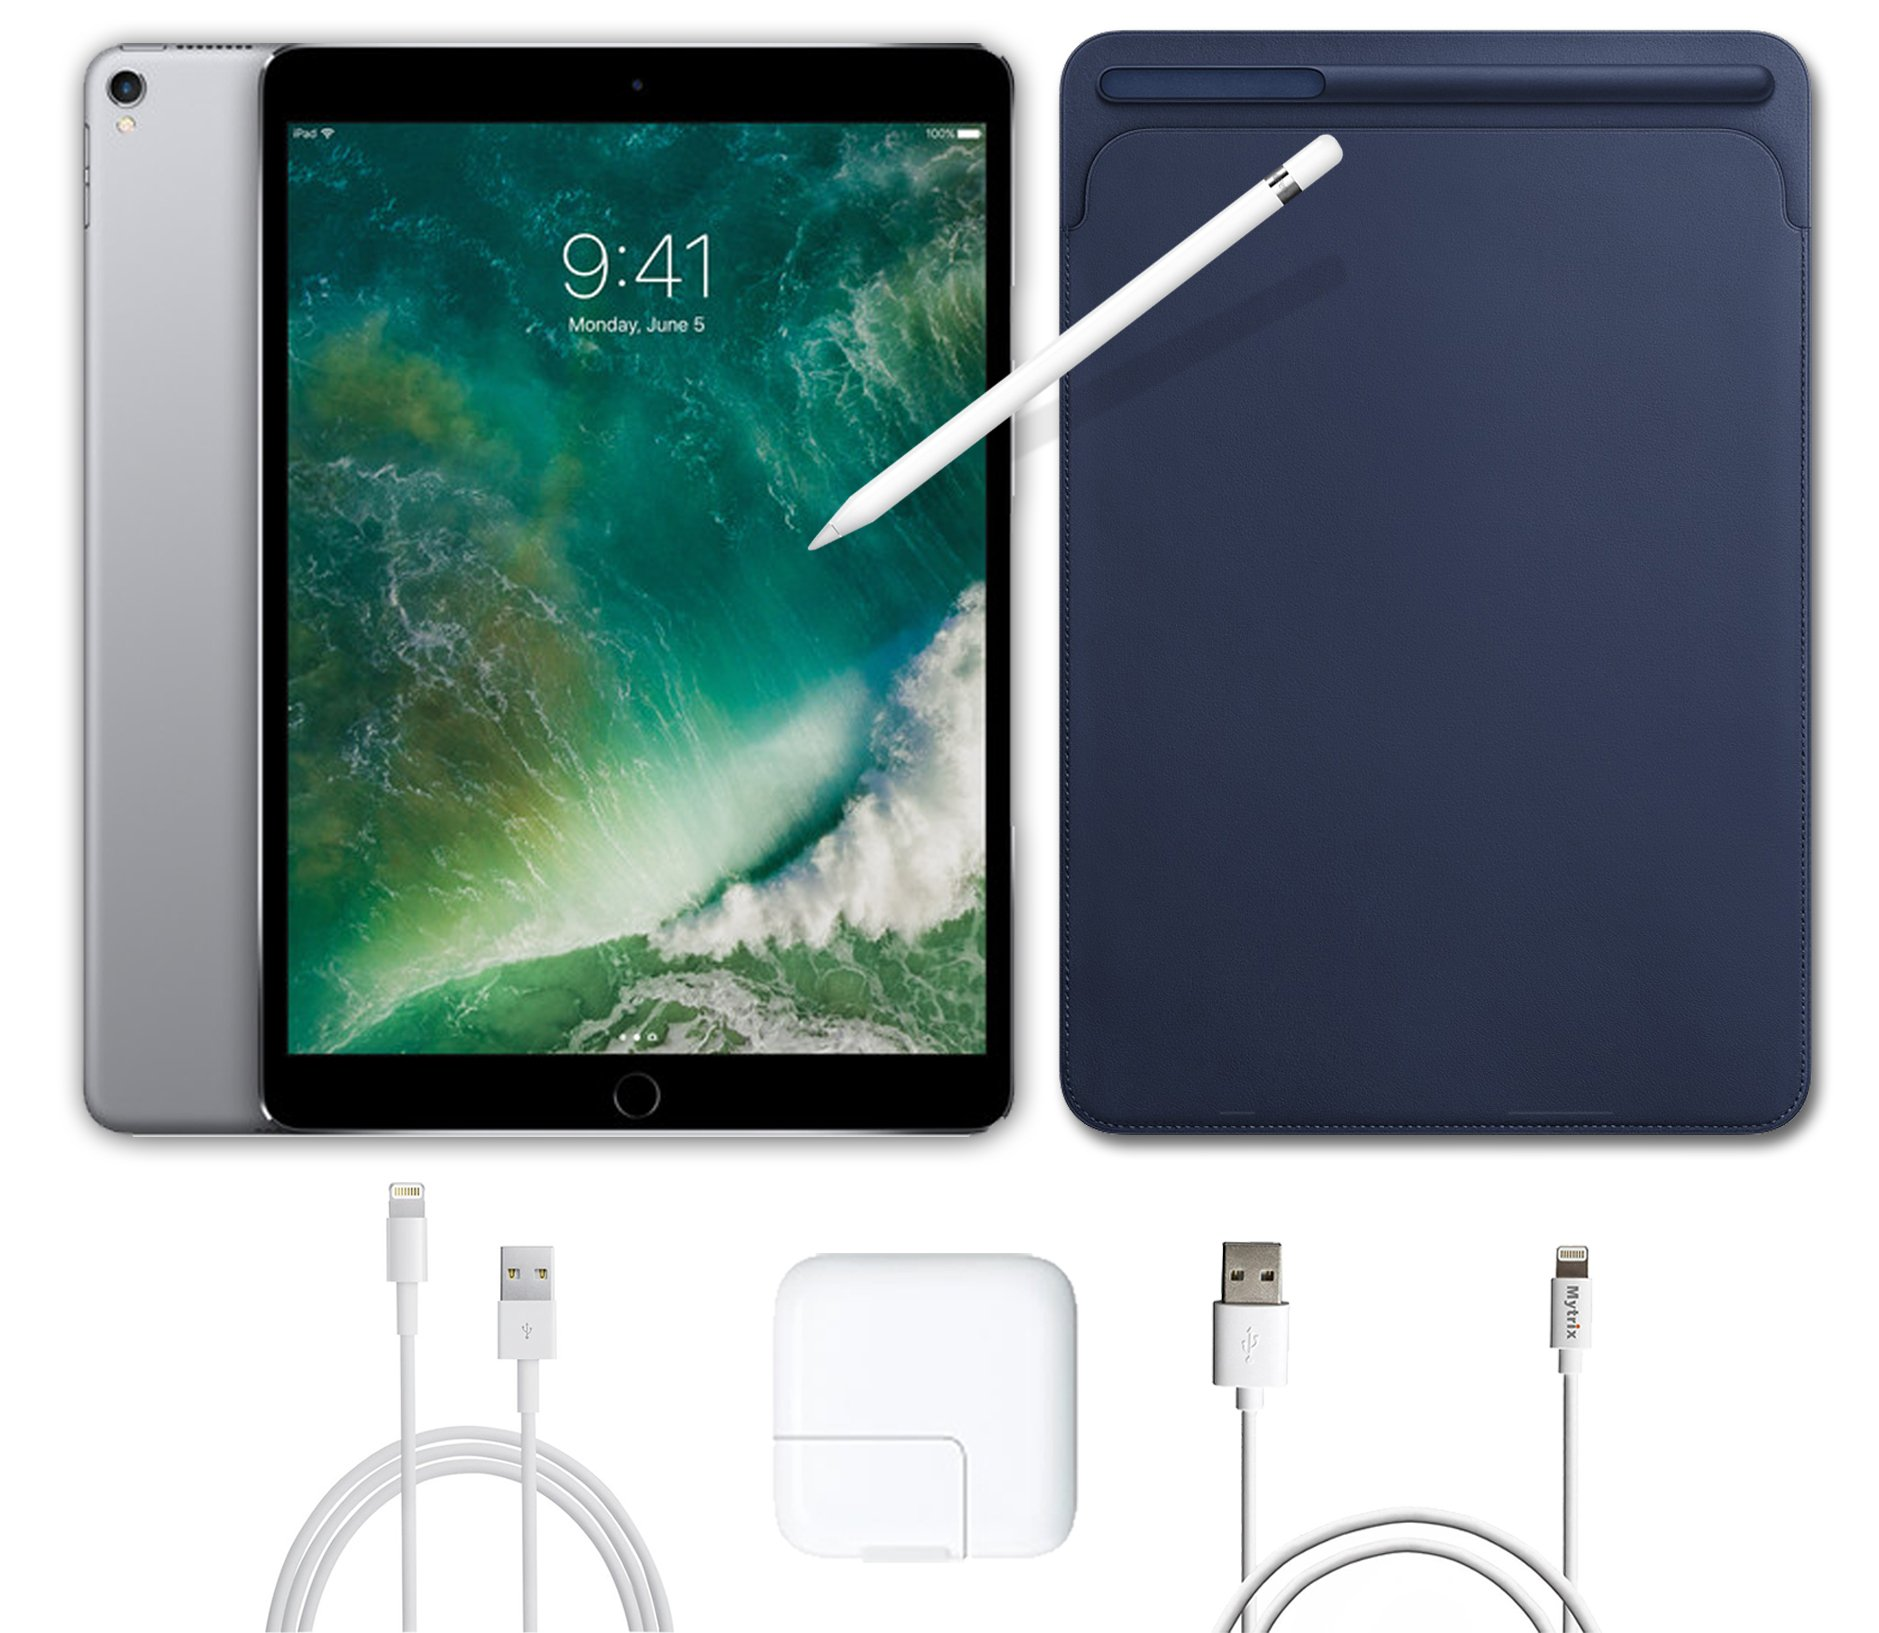 2017 New IPad Pro Bundle (5 Items): Apple 10.5 inch iPad Pro with Wi-Fi 512 GB Space Gray, Leather Sleeve Midnight Blue, Apple Pencil, Mytrix USB Apple Lightning Cable and All-in-One Travel Charger